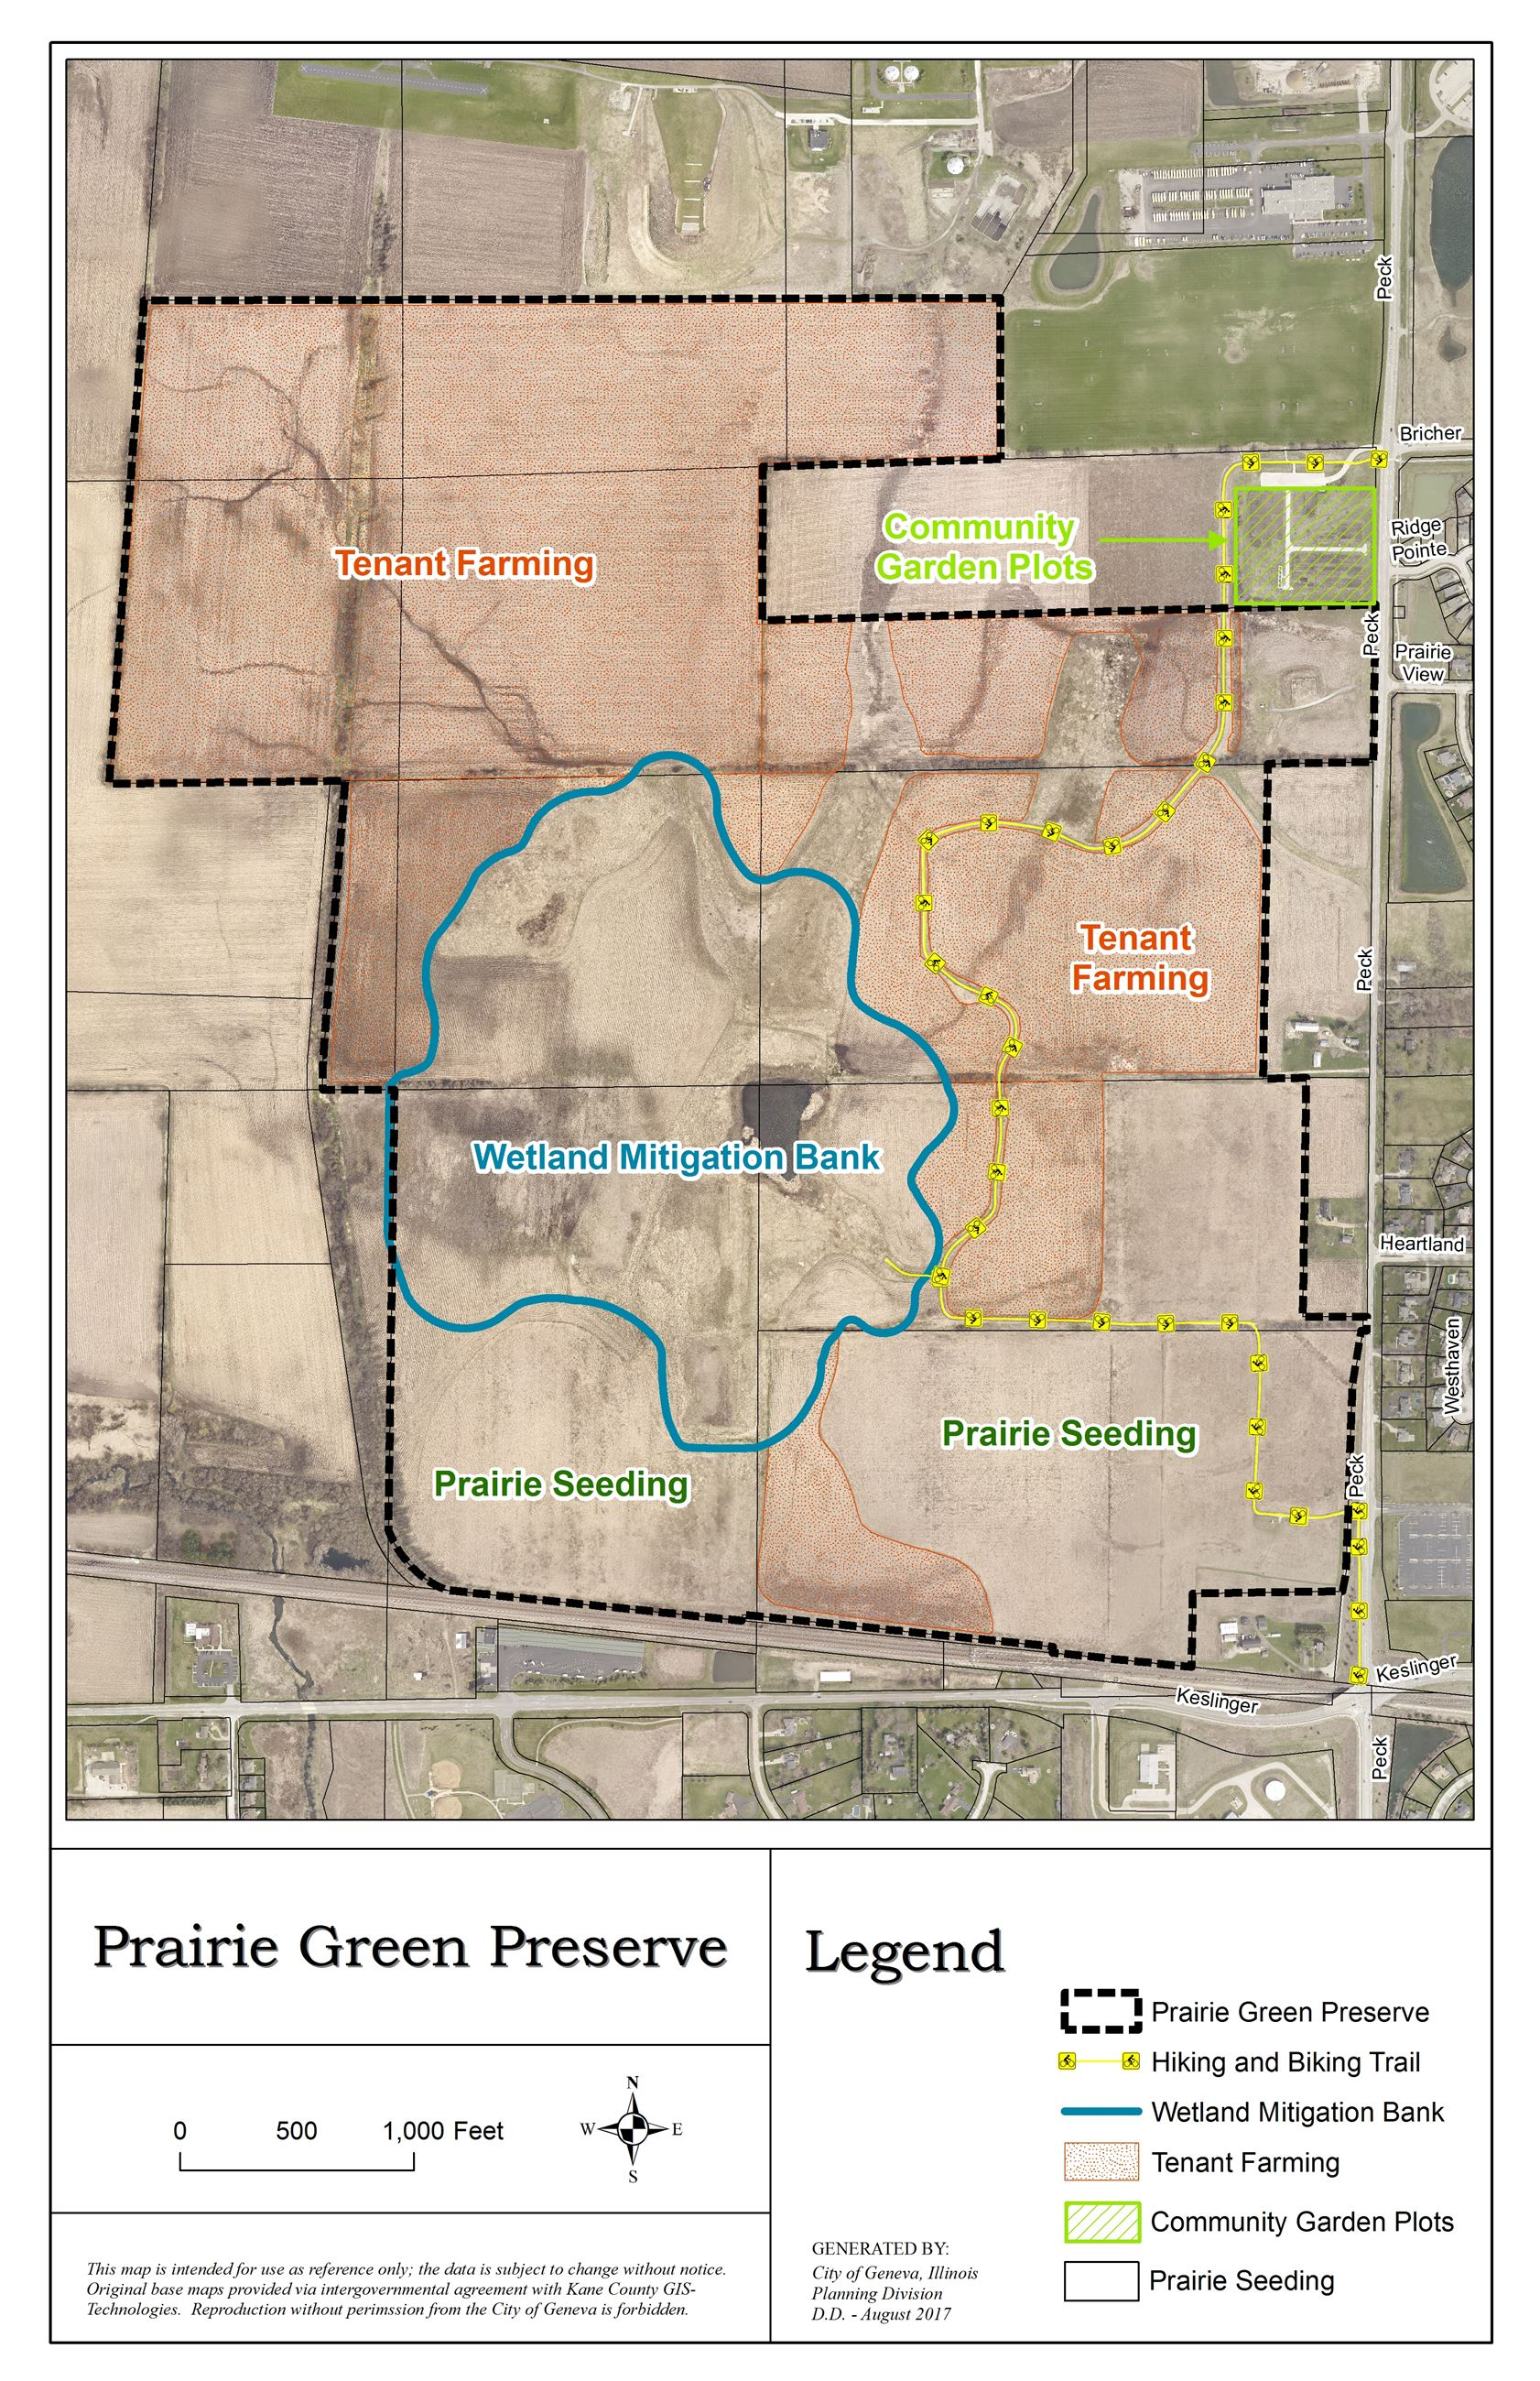 Prairie Green Preserve | Geneva, IL - Official Website on map of union county il, map of stark county il, map of henderson county il, map of dupage county il, map of st. clair county il, towns in kane county il, map of rock island county il, map of richland county il, map of cook county il, map of stephenson county il, map of jasper county il, map of bond county il, map of mcdonough county il, map of schuyler county il, map of franklin county il, map of woodford county il, map of gallatin county il, map of jo daviess county il, map of jersey county il, map of lake county il,